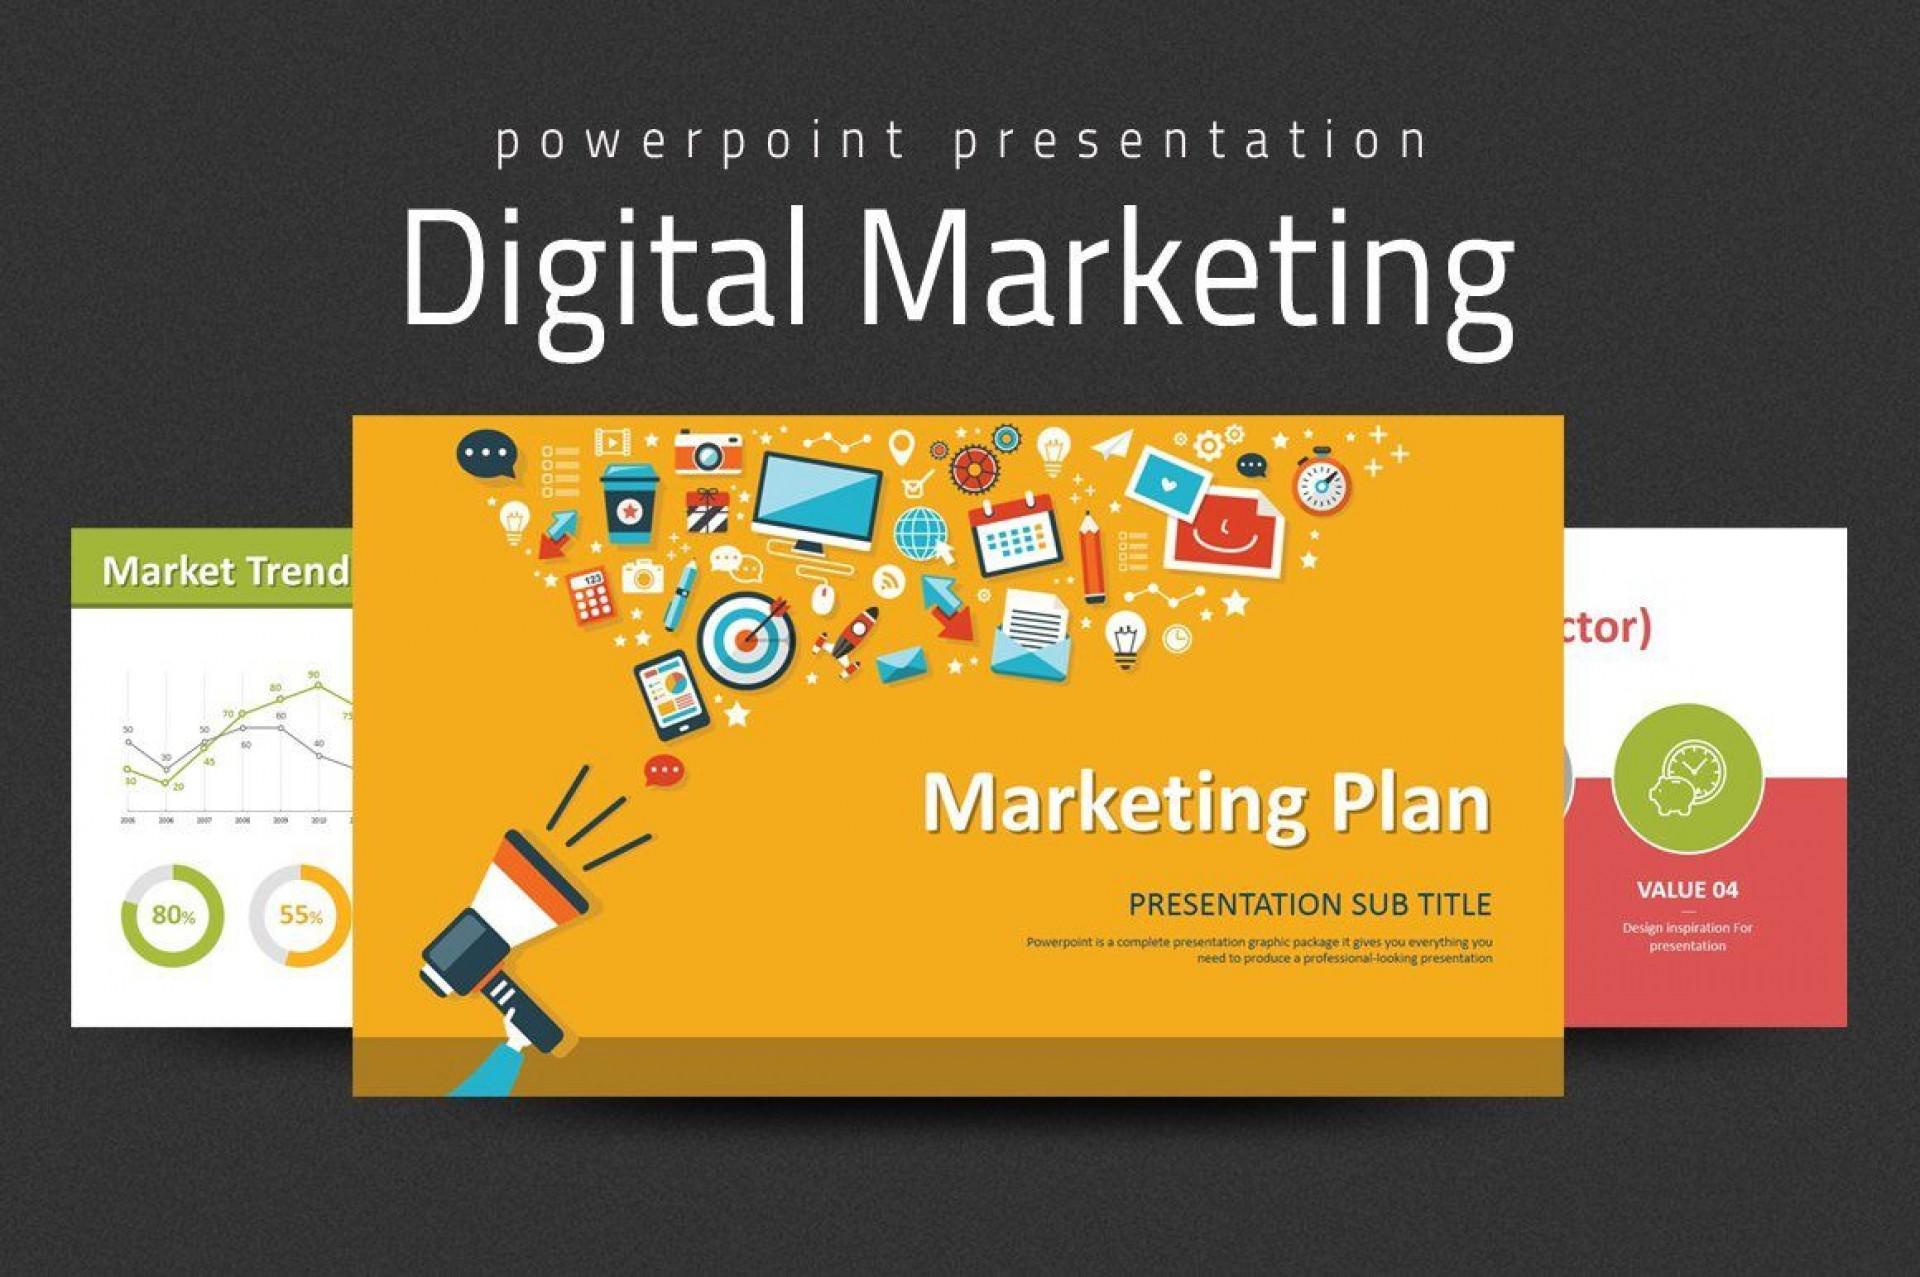 000 Formidable Digital Marketing Plan Template Free High Def  Ppt Word1920